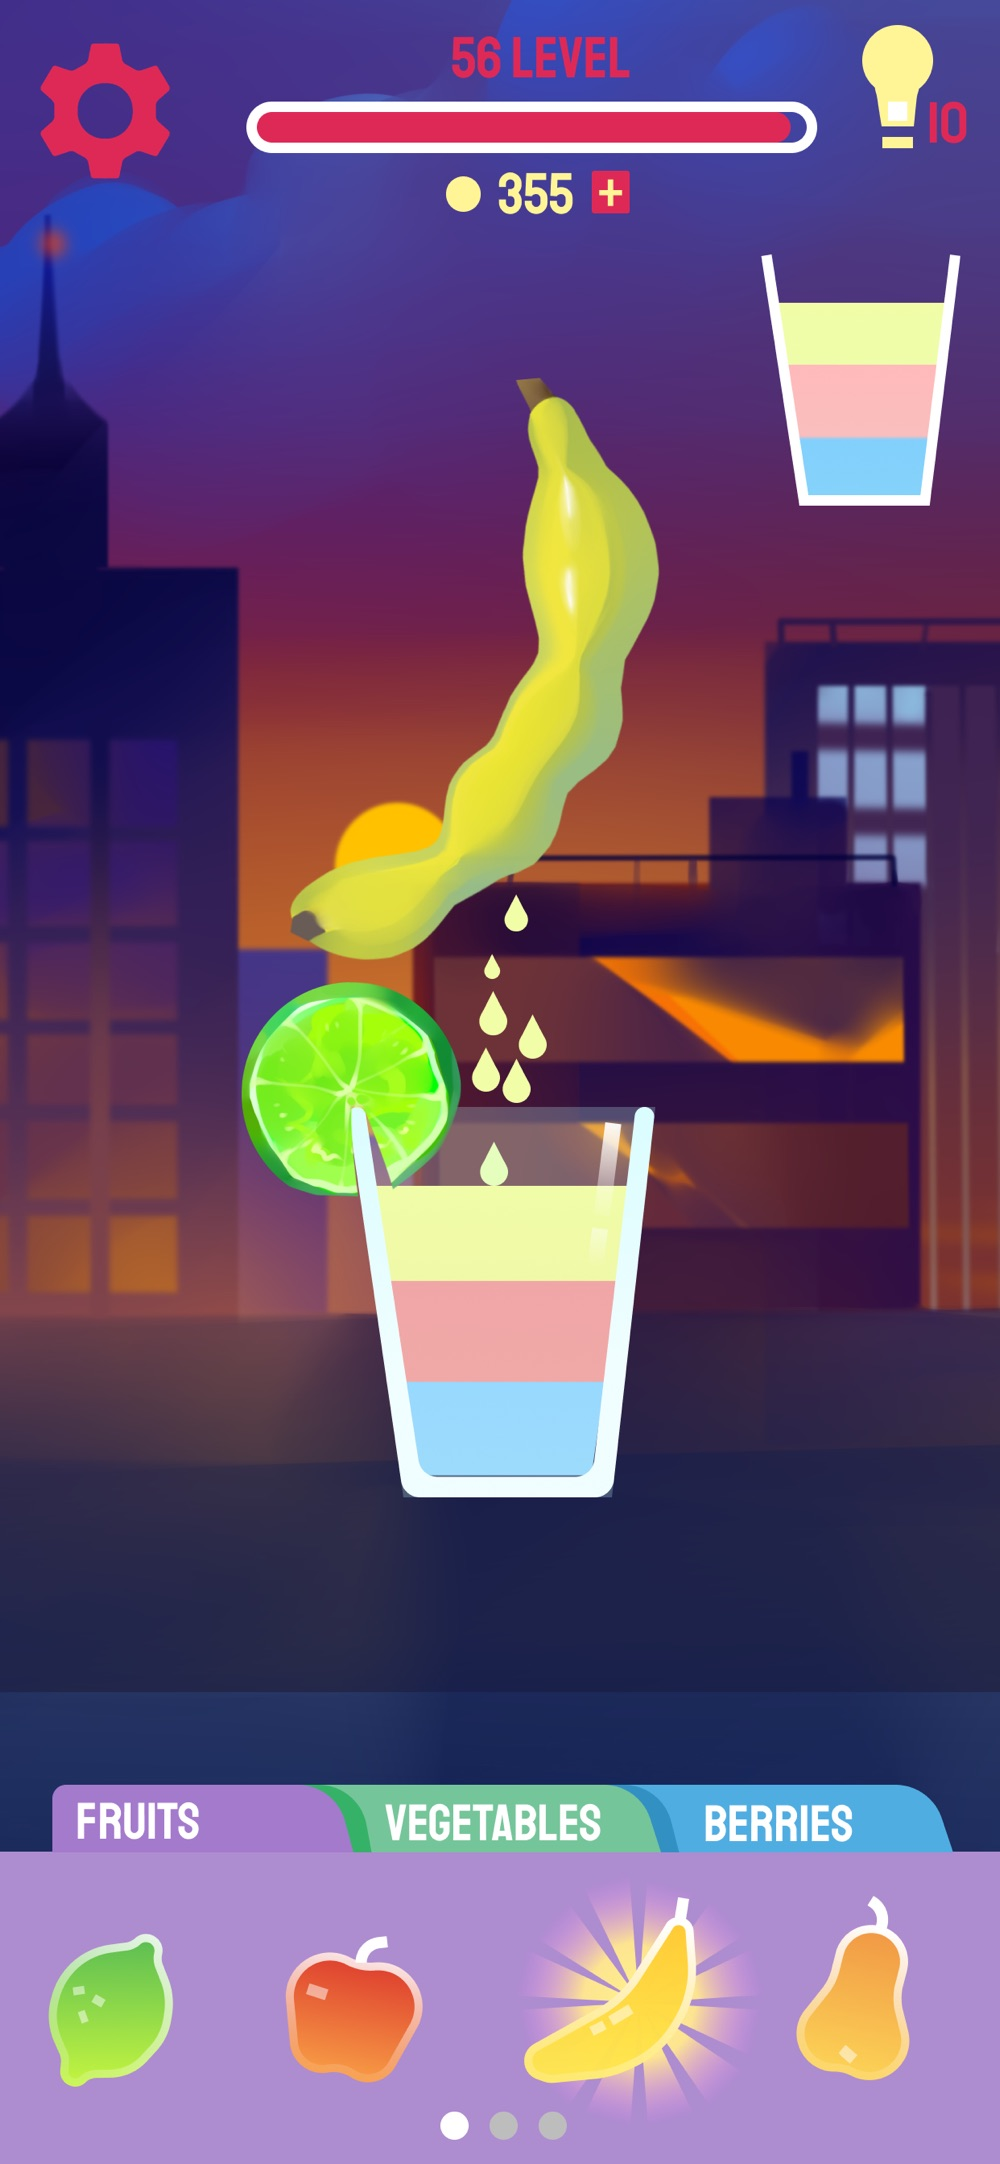 Smoothie king: mixed drinks hack tool